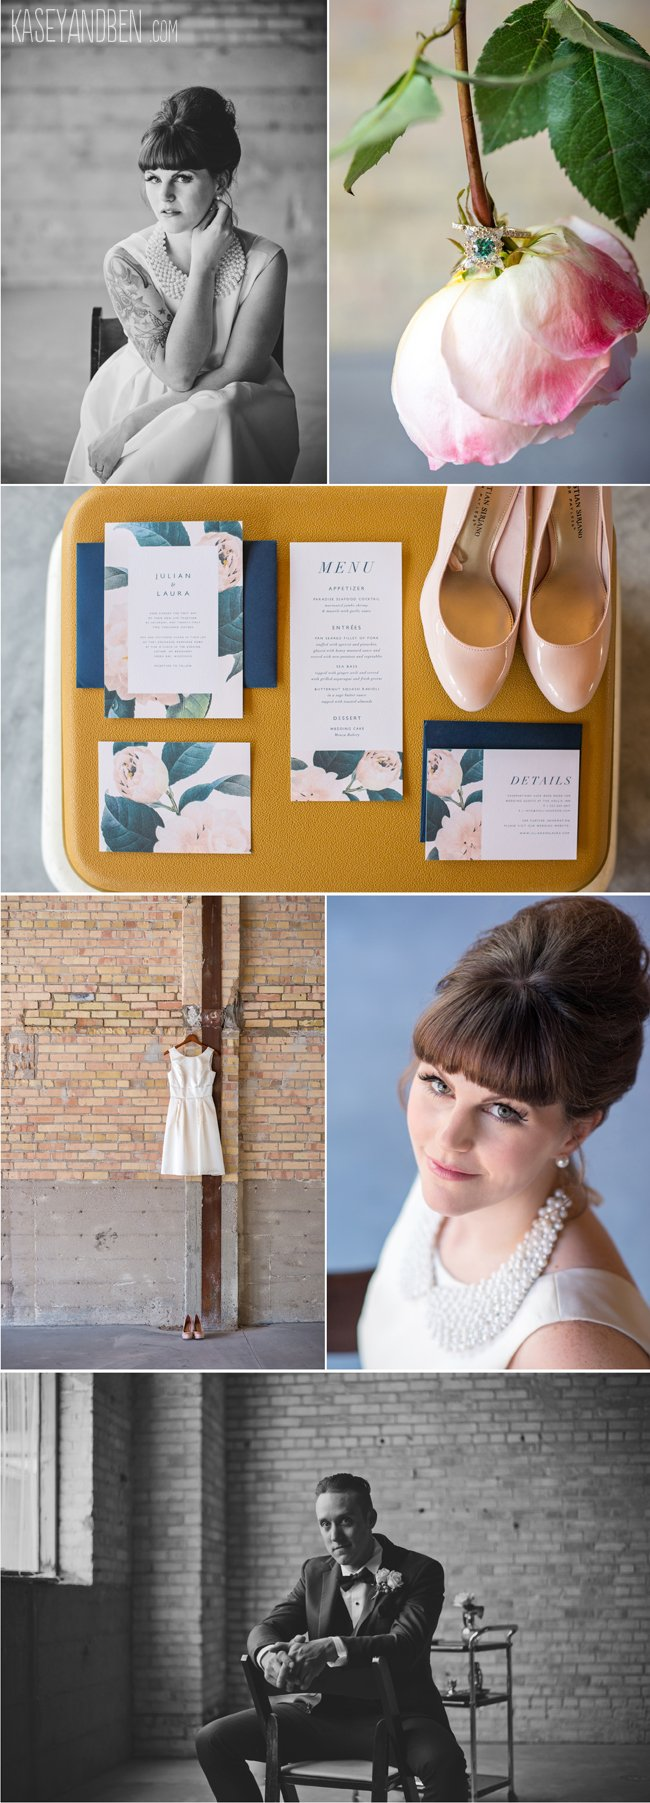 Green-Bay-Wedding-Gather-On-Broadway-Elopement-Downtown-Small-Intimate-Photographer-Photography-Midcentury-Modern-1